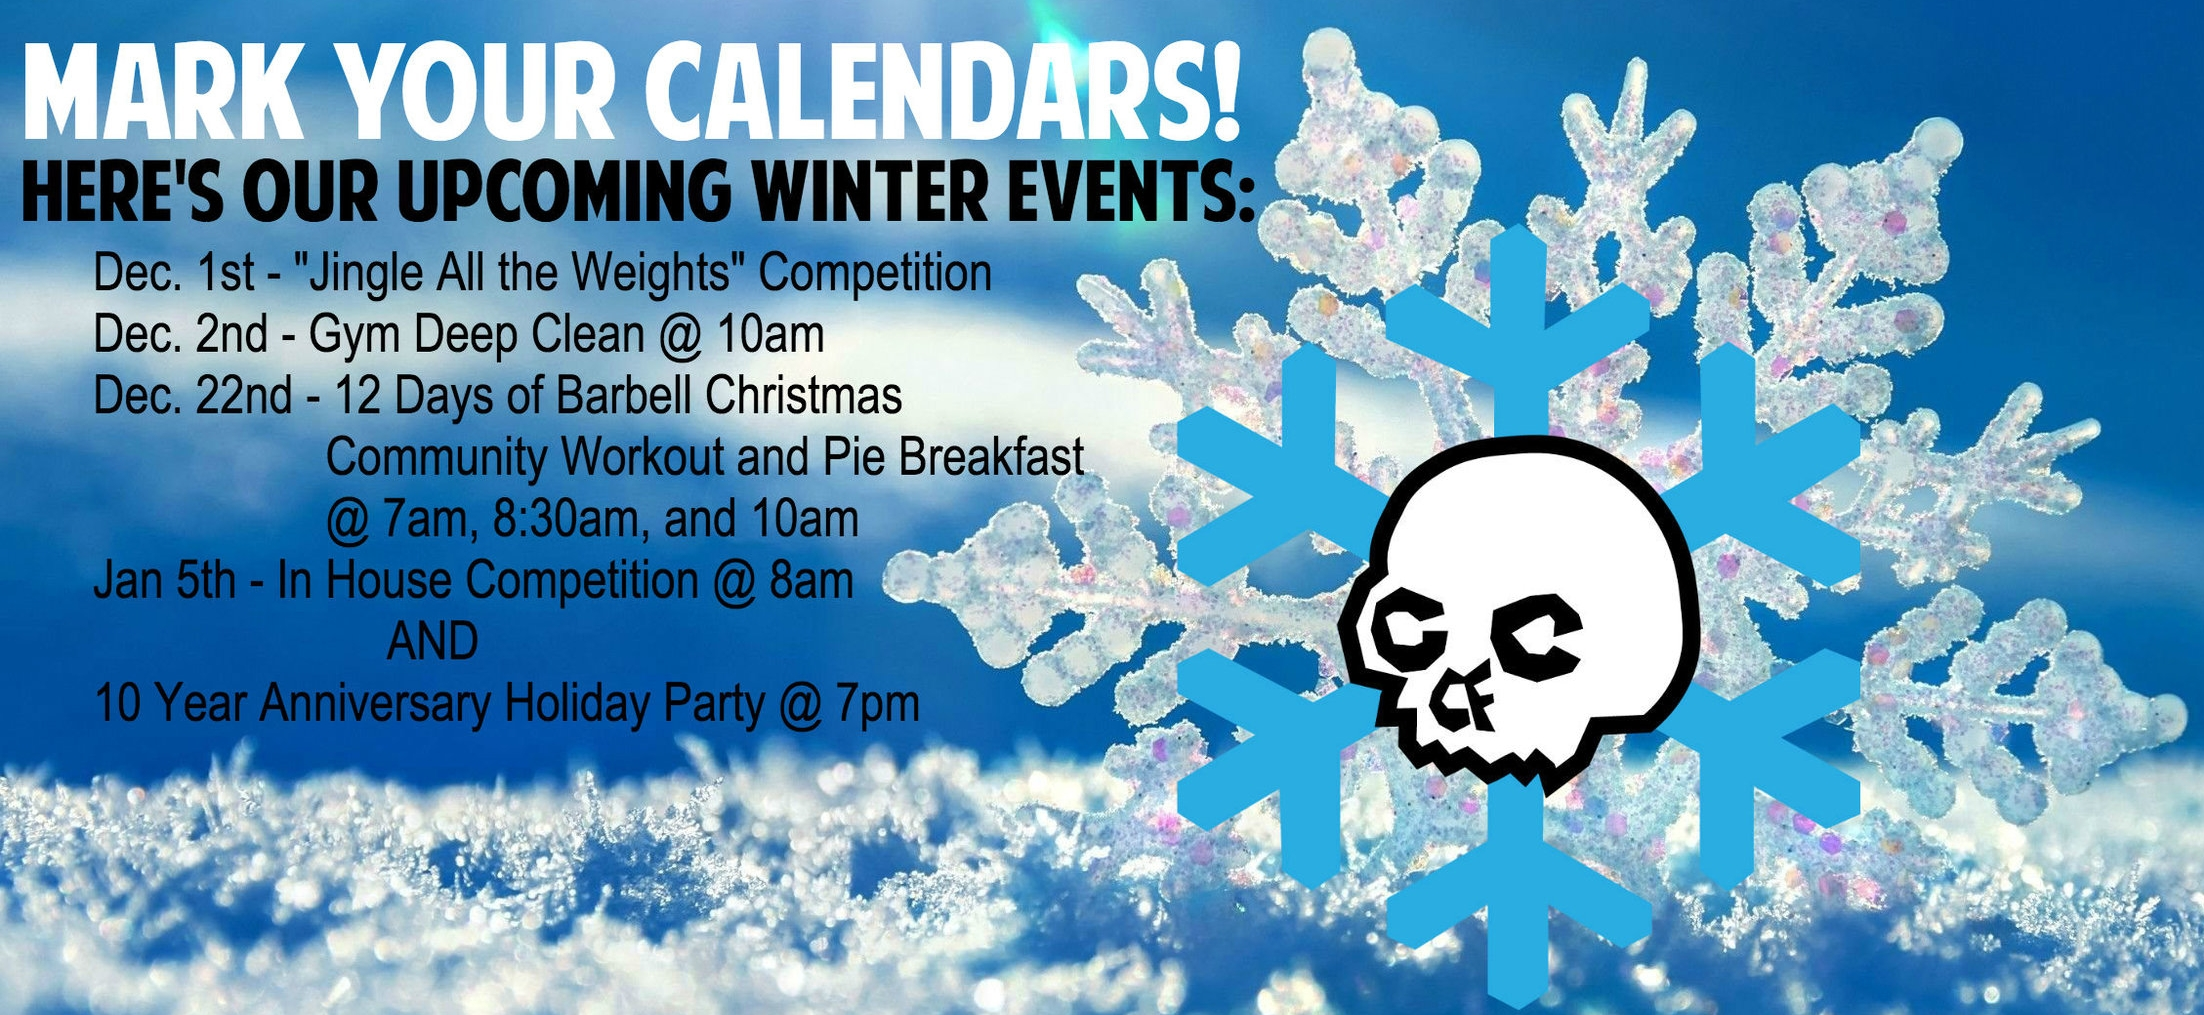 Winter Events Post.jpg